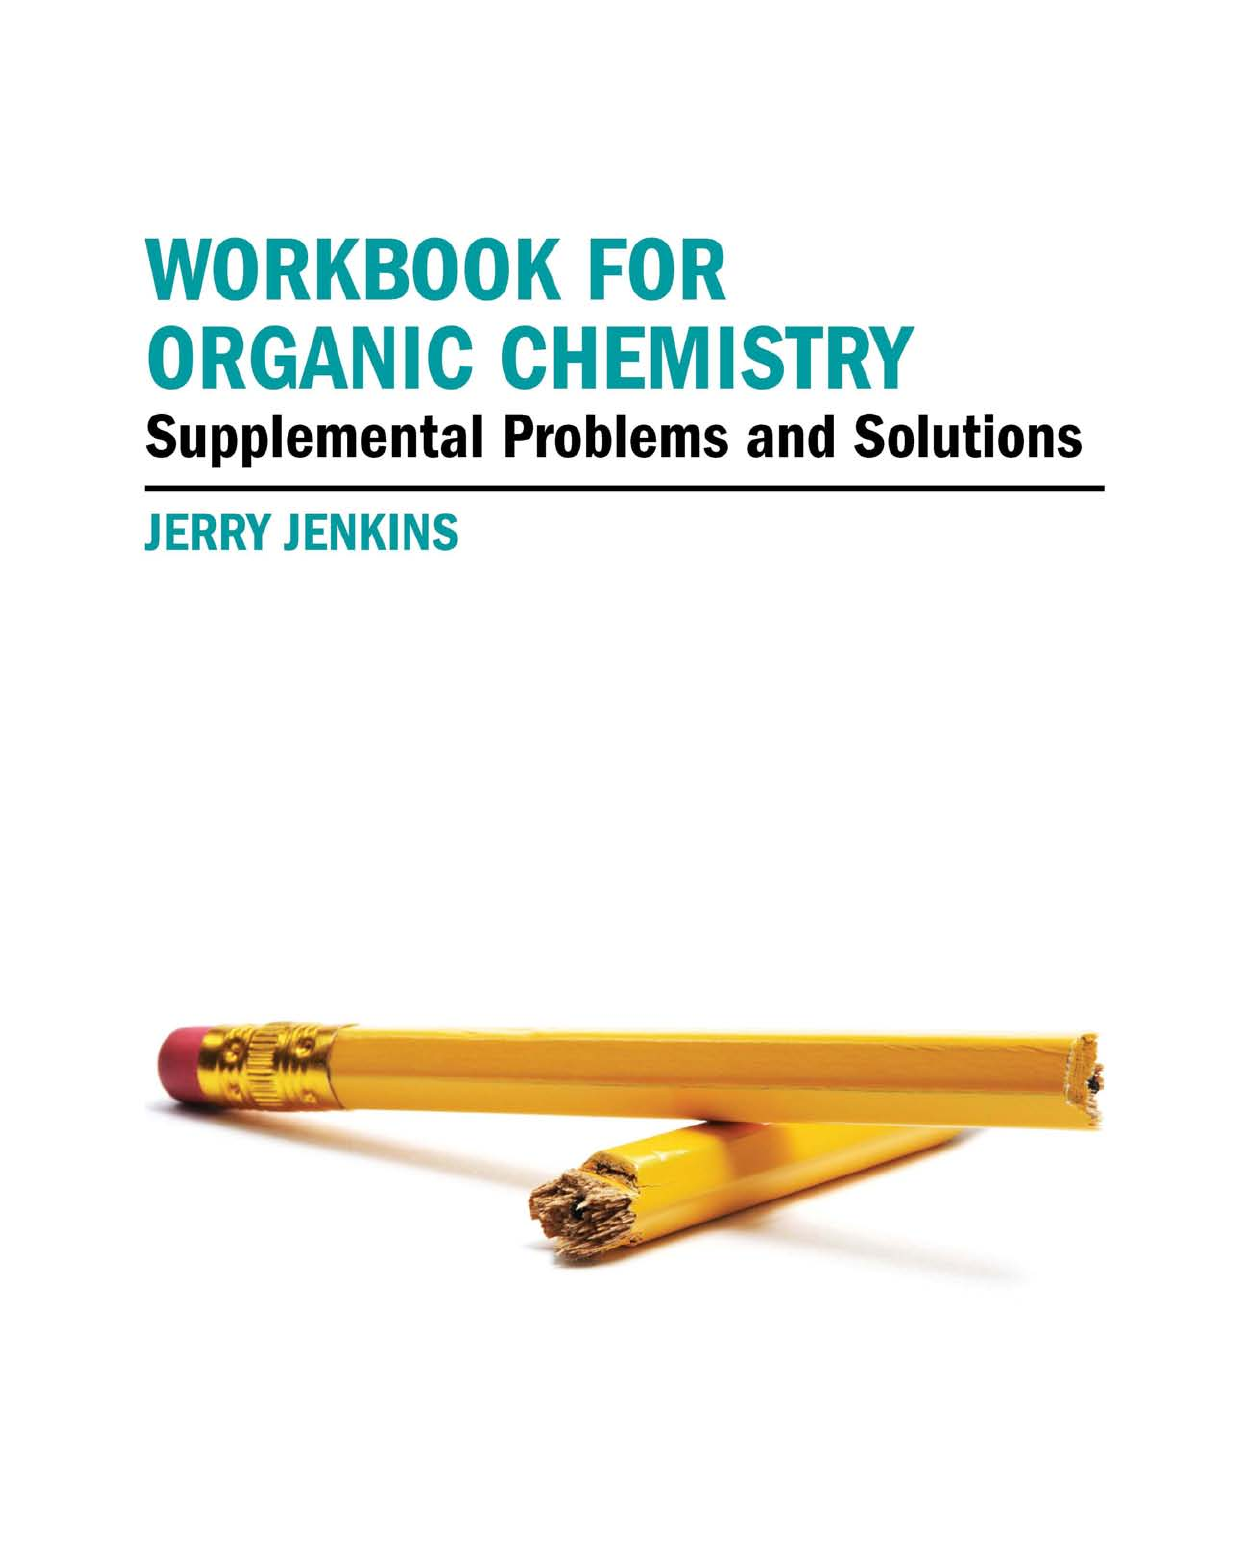 Workbook for Organic Chemistry - Supplemental Problems and